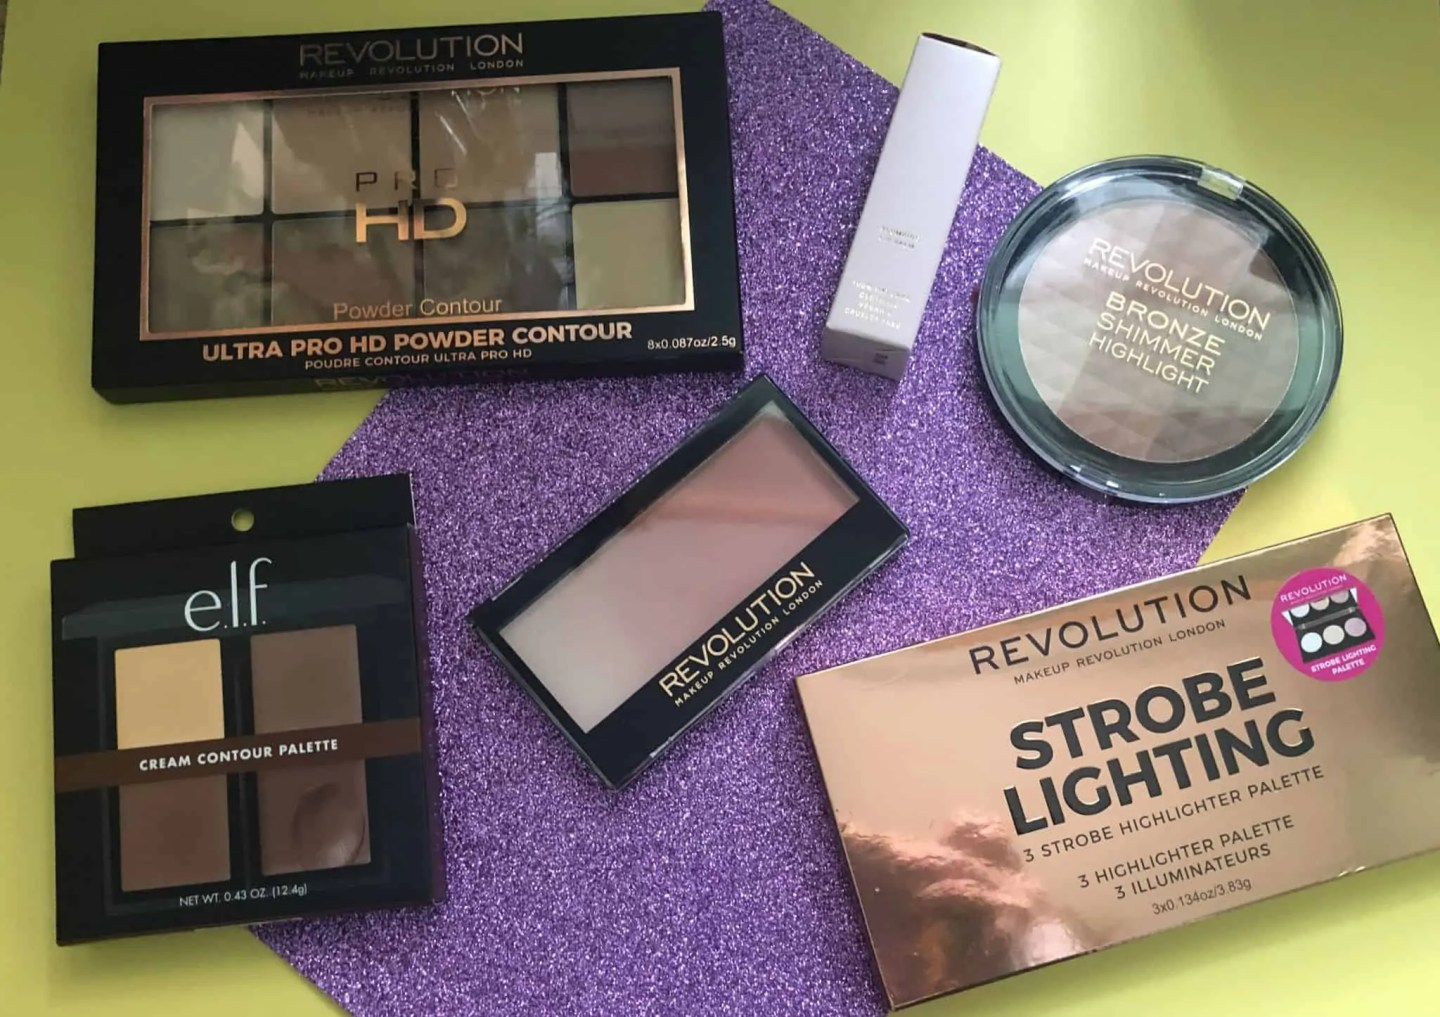 Enter to win a contour makeup and highlighter beauty bundle